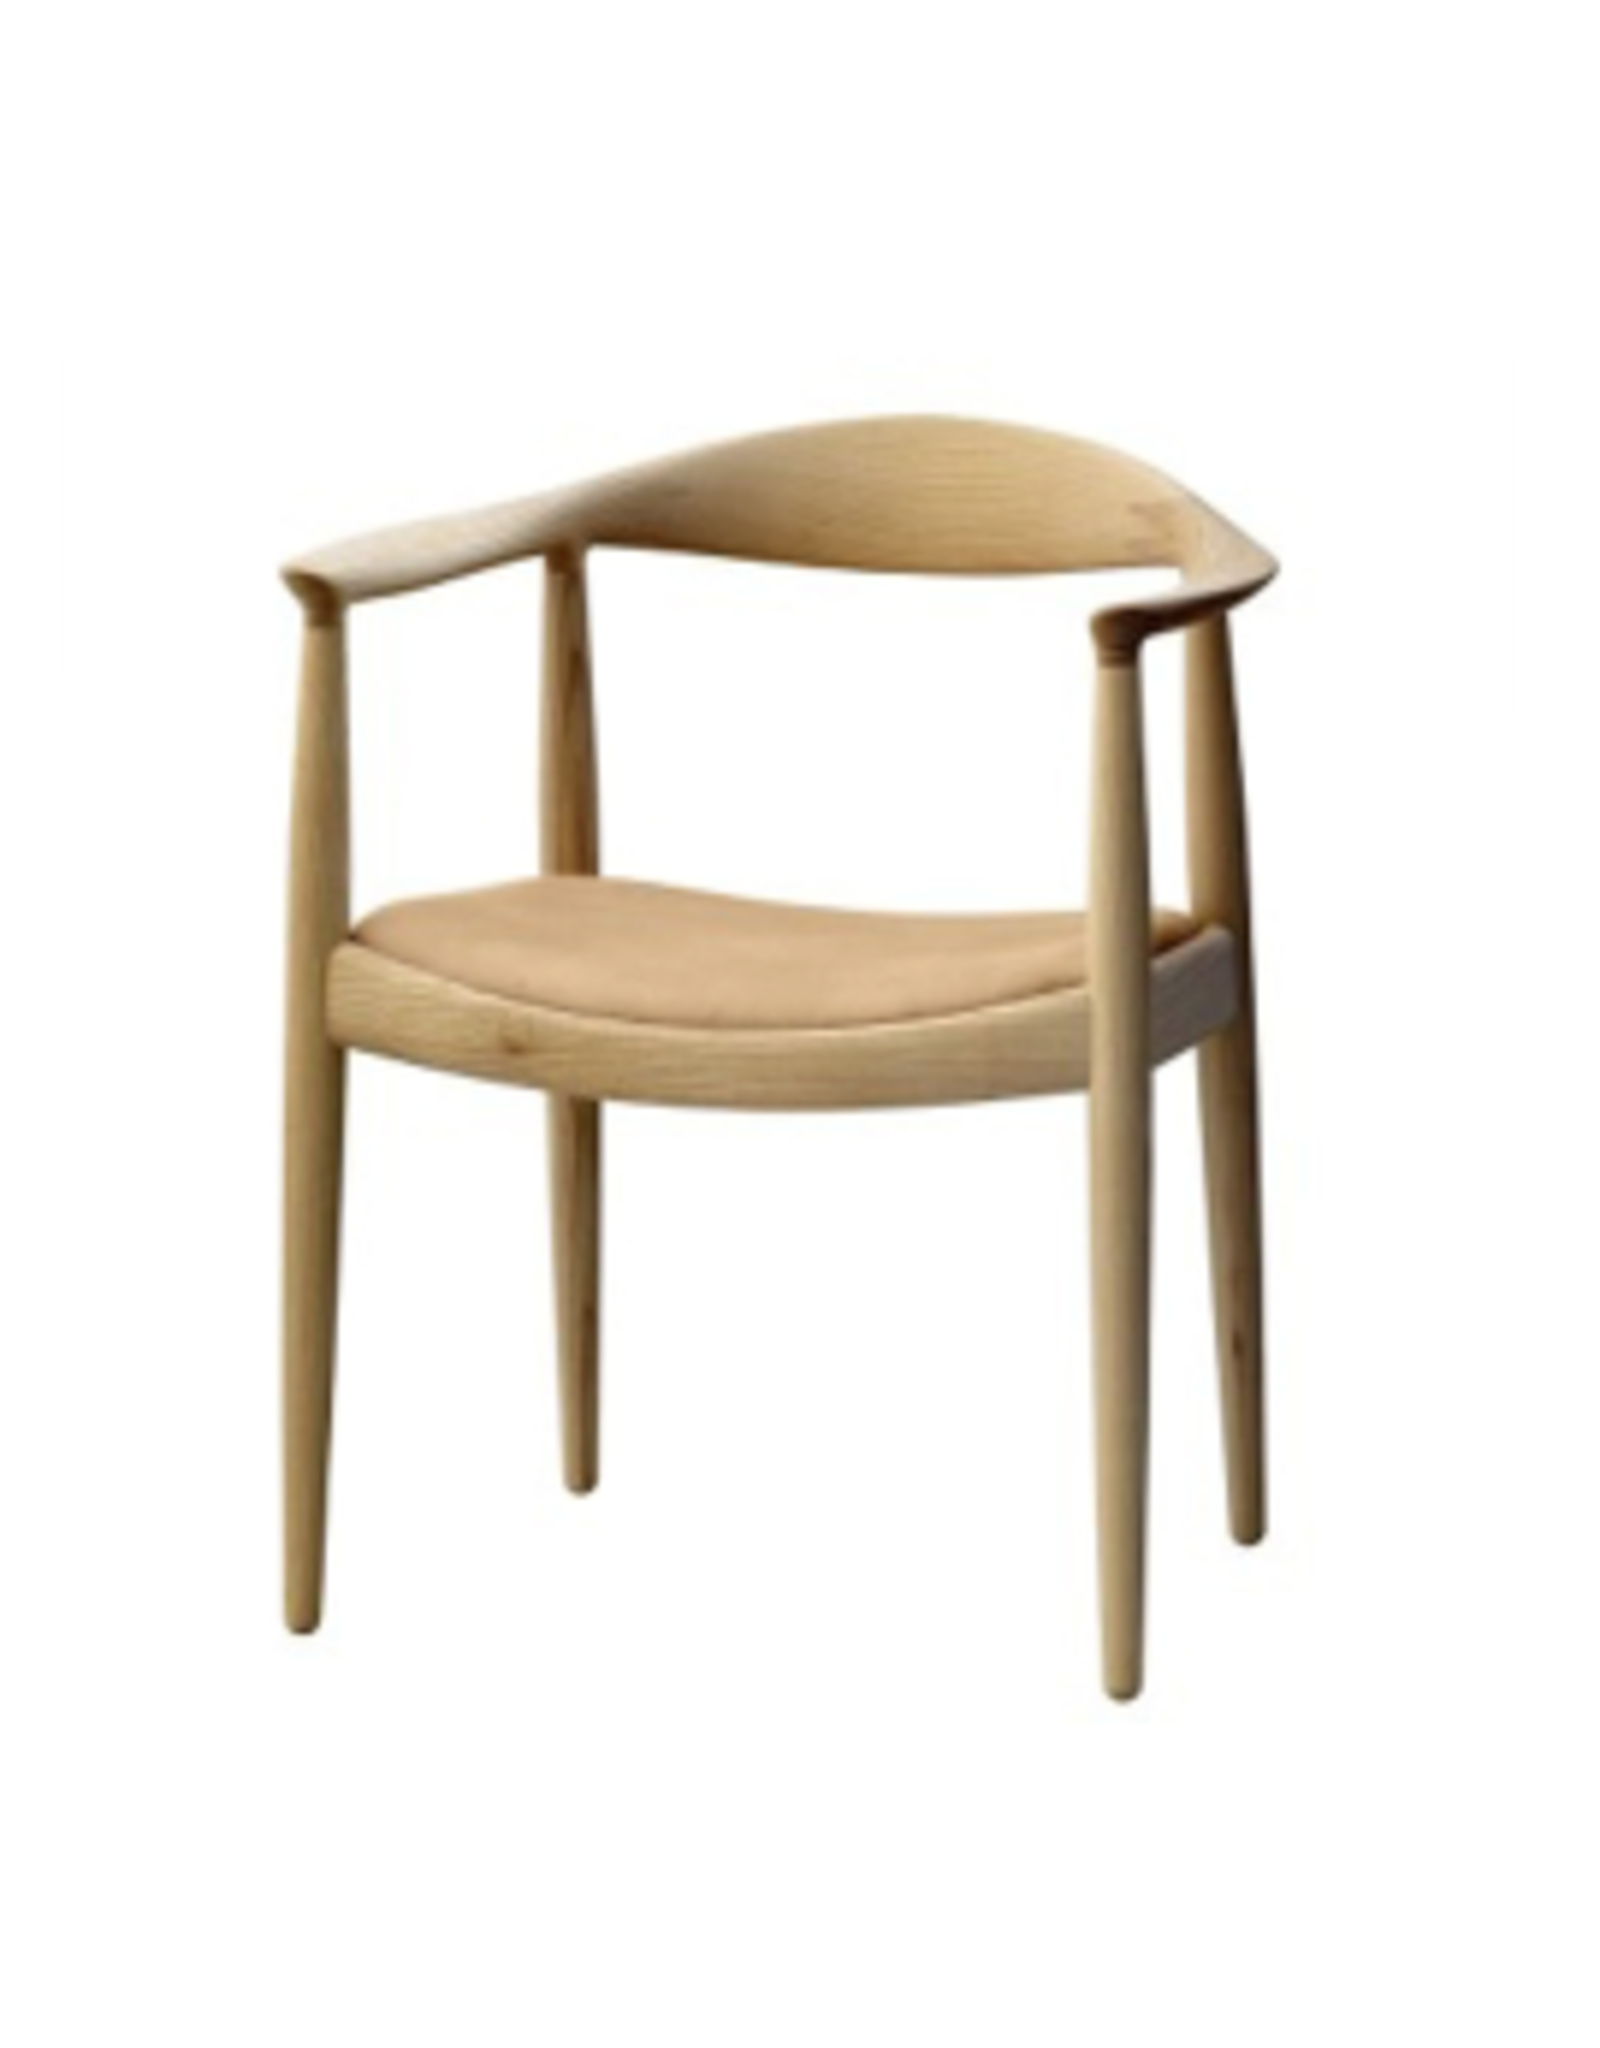 PP MØBLER PP503 THE CHAIR